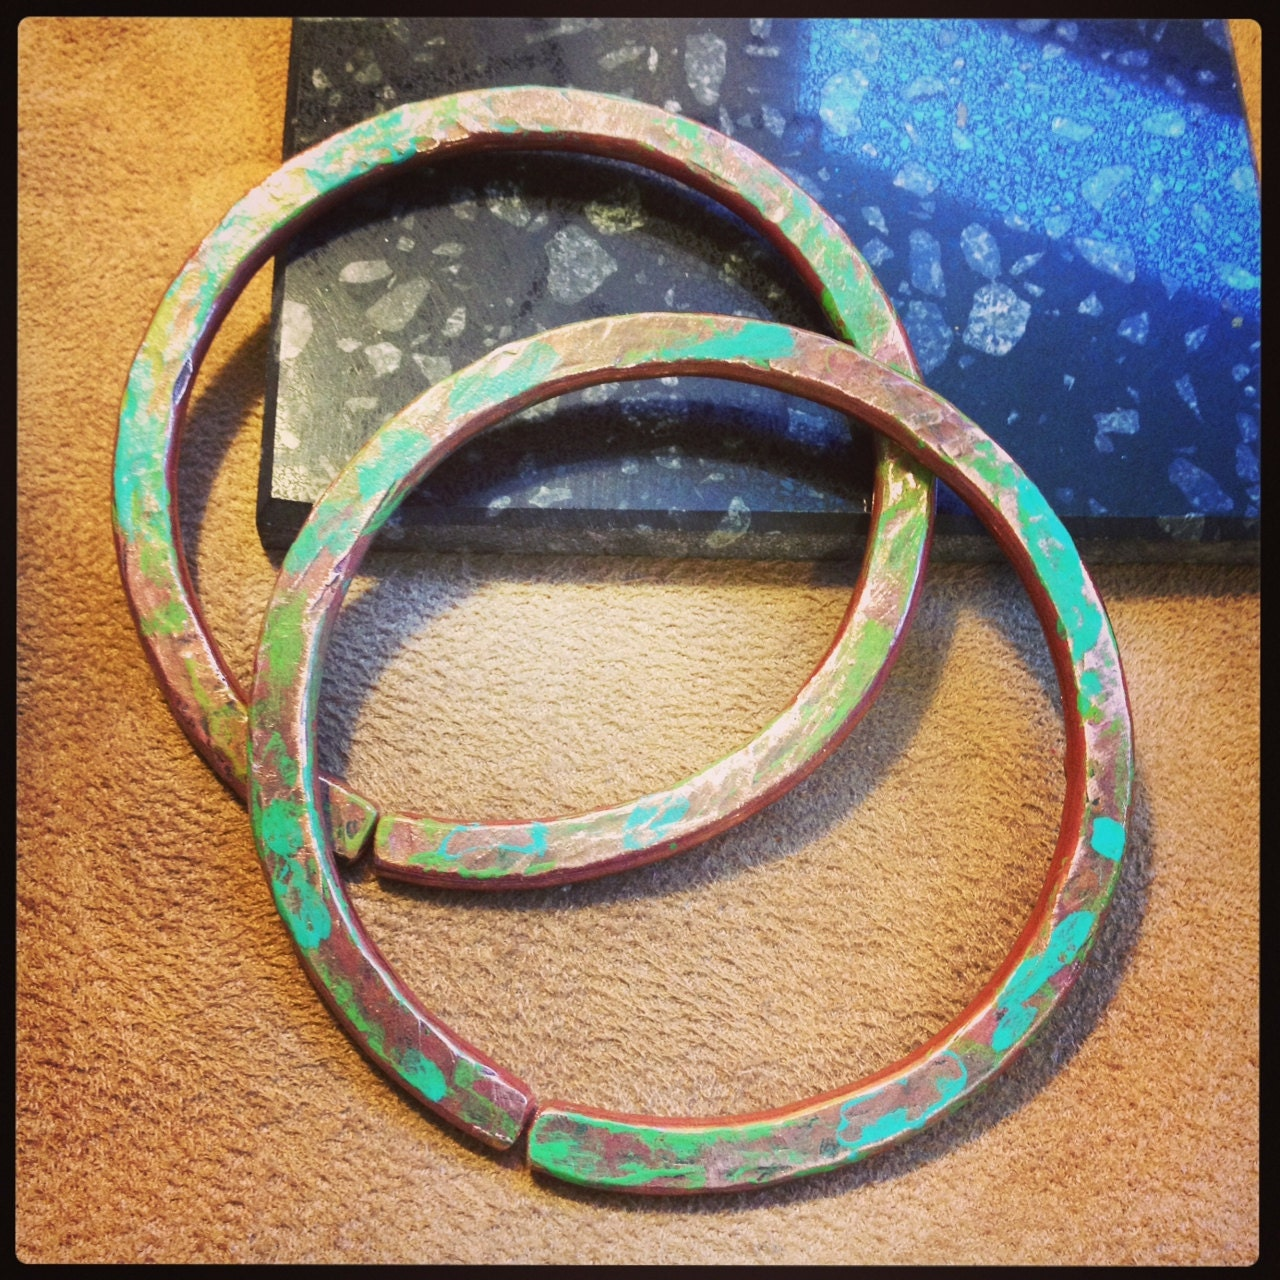 "4g Solid Copper Hammered Hoops with Patina - Earrings for Stretched Lobes, 3"" Outer Diameter - Gauges - Gauged Hoops"